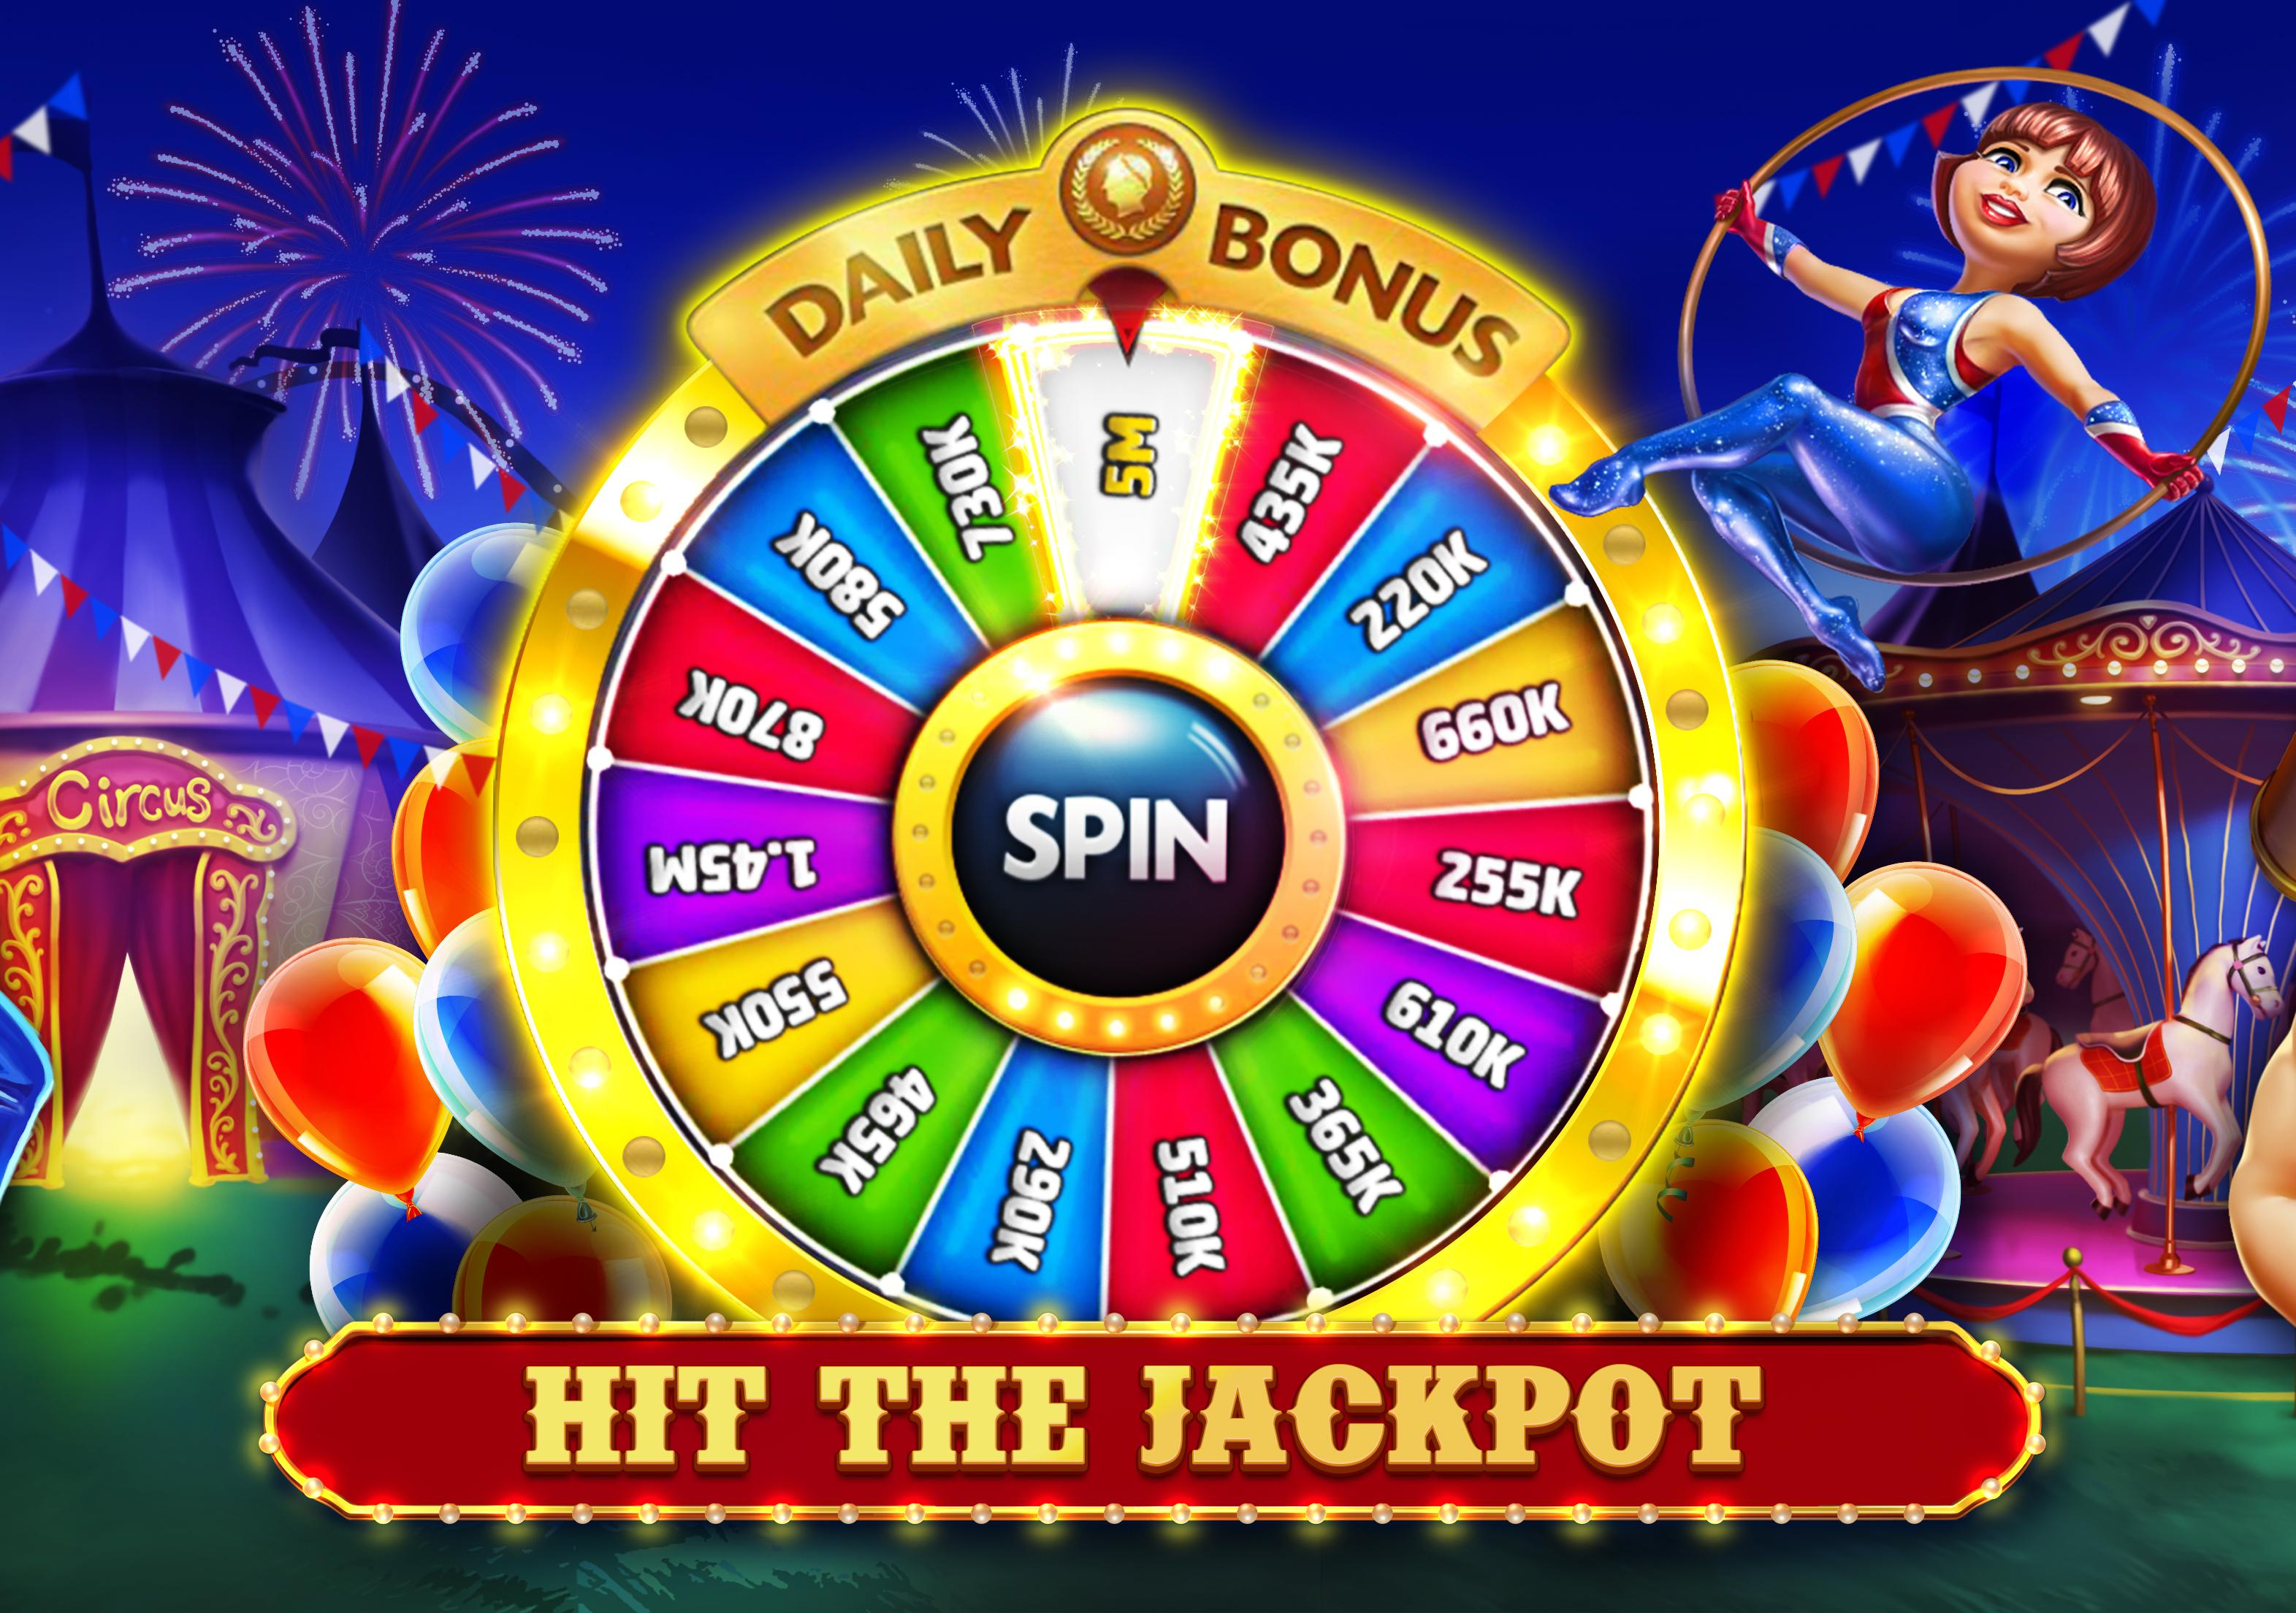 Caesars Casino Free Slots Games Apk 3 66 Download For Android